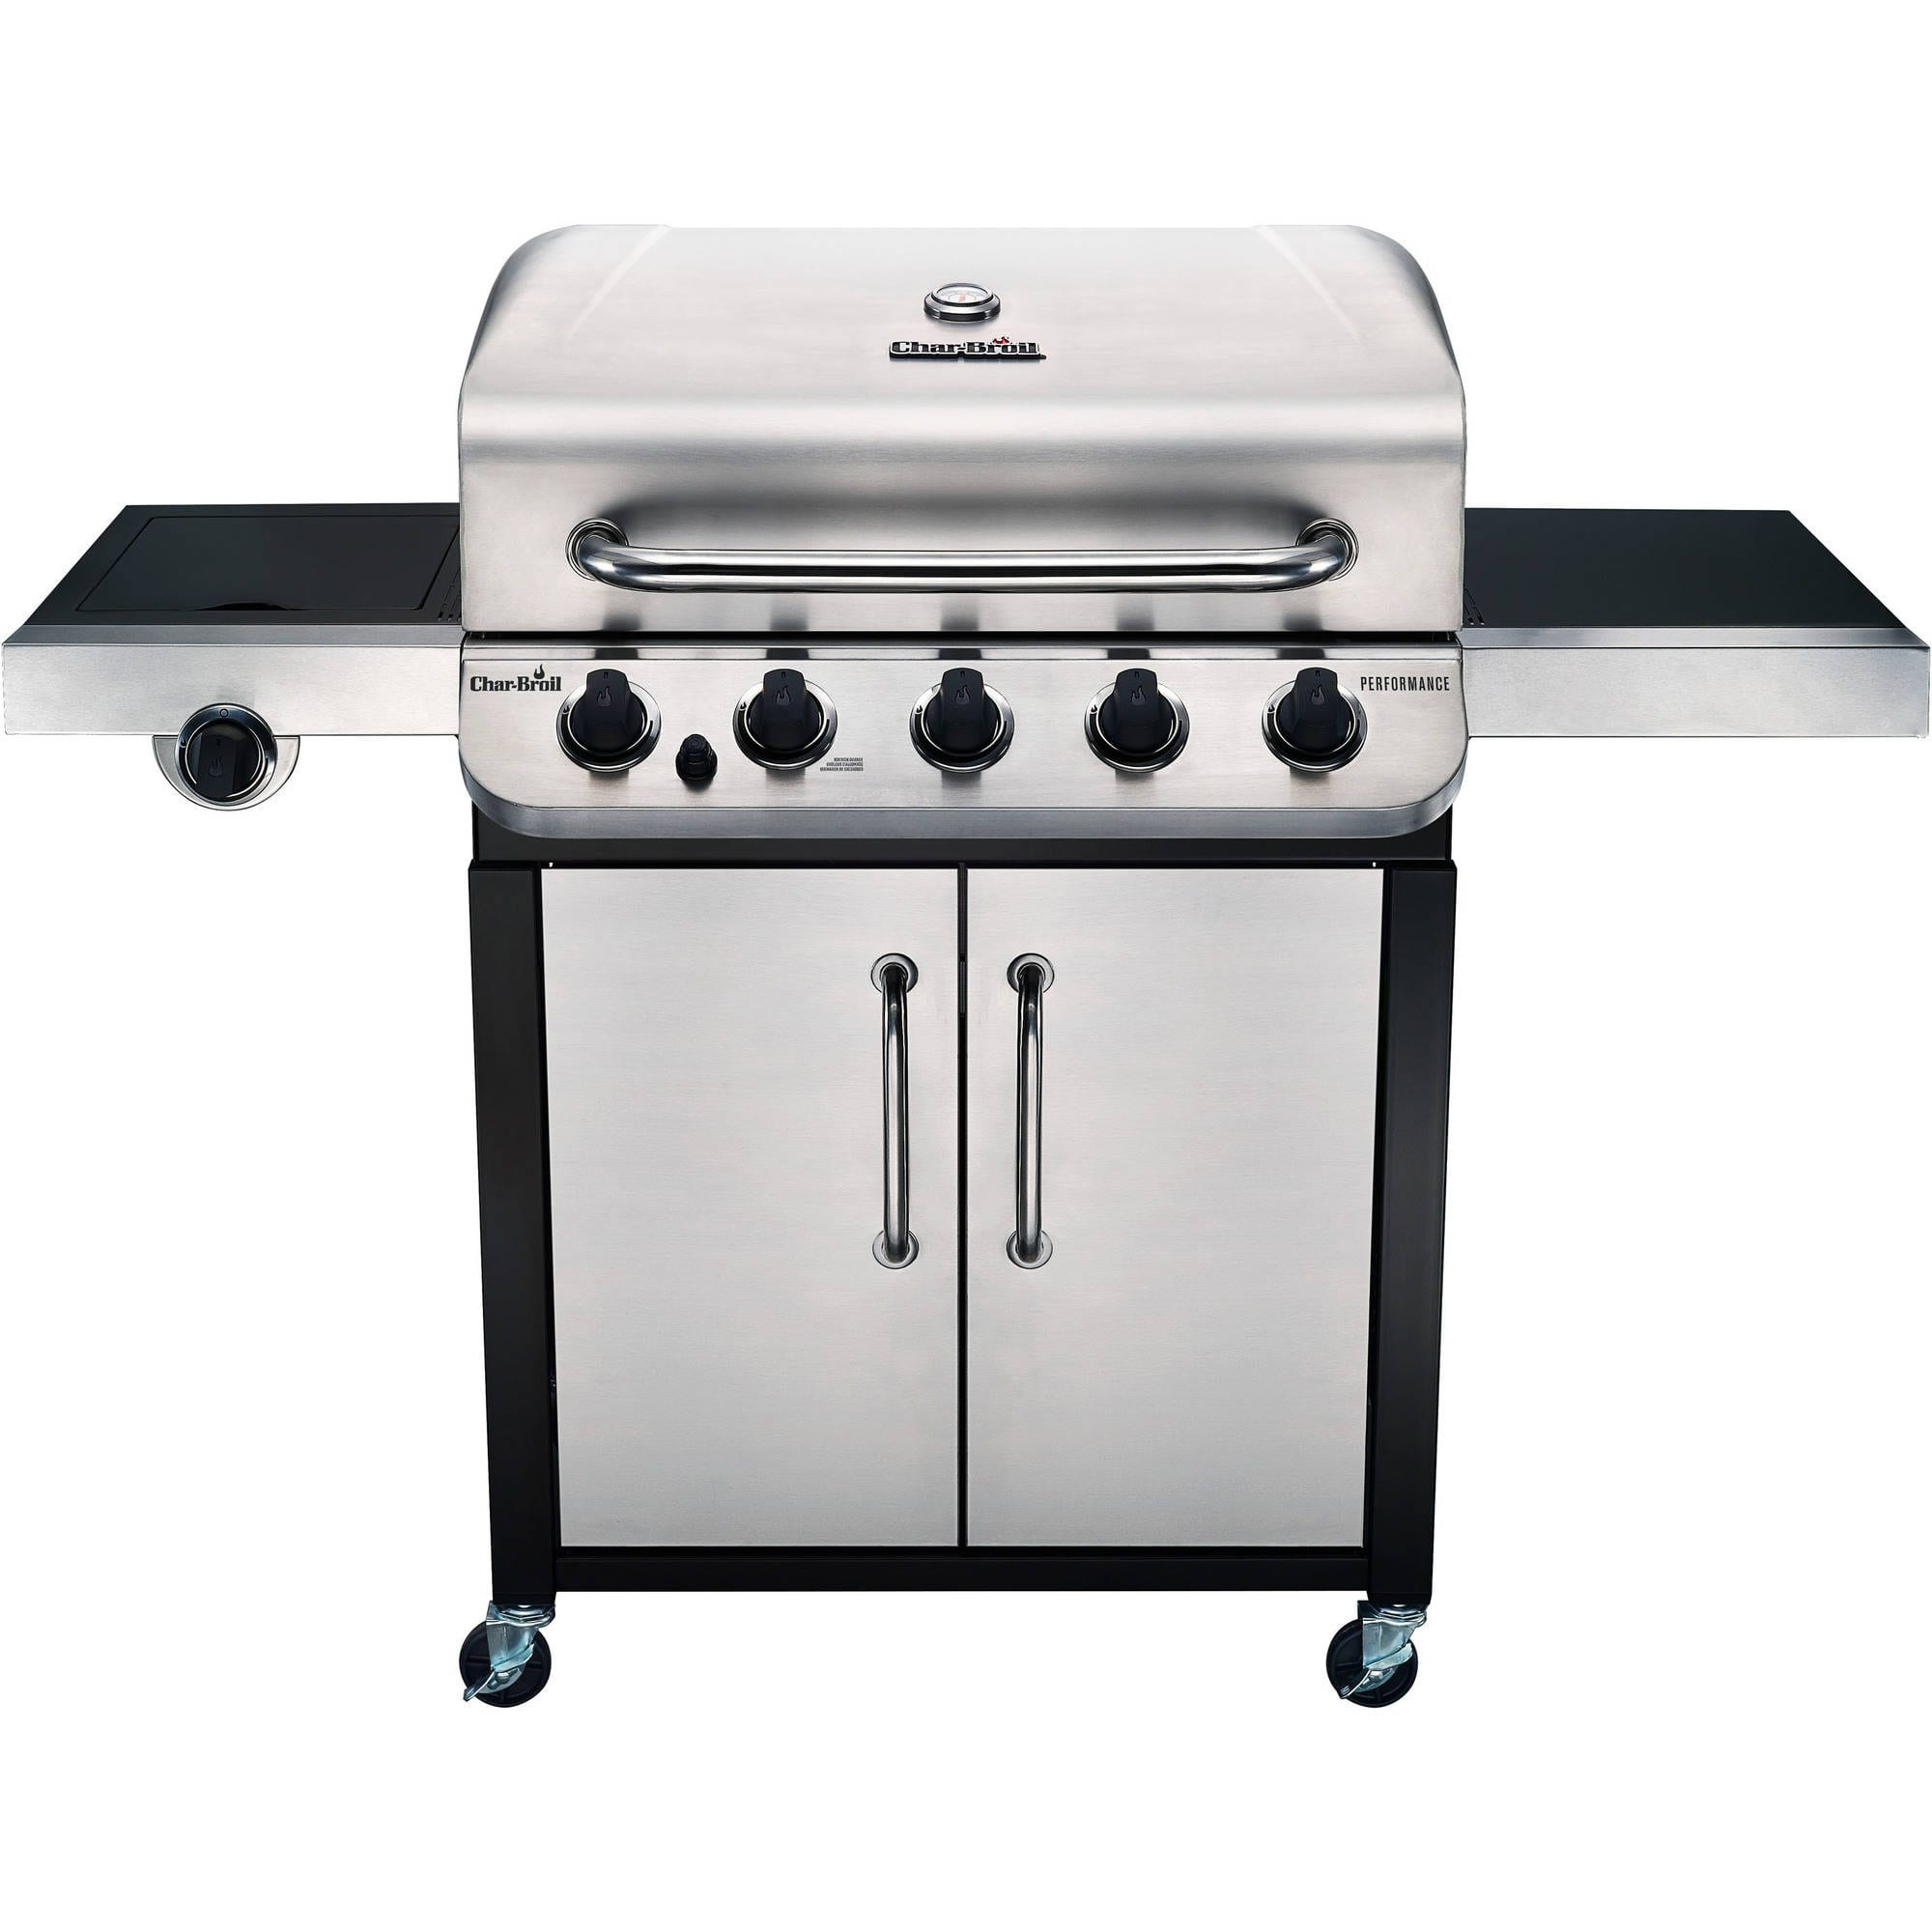 Char-Broil 5-Burner Gas Grill $101.74